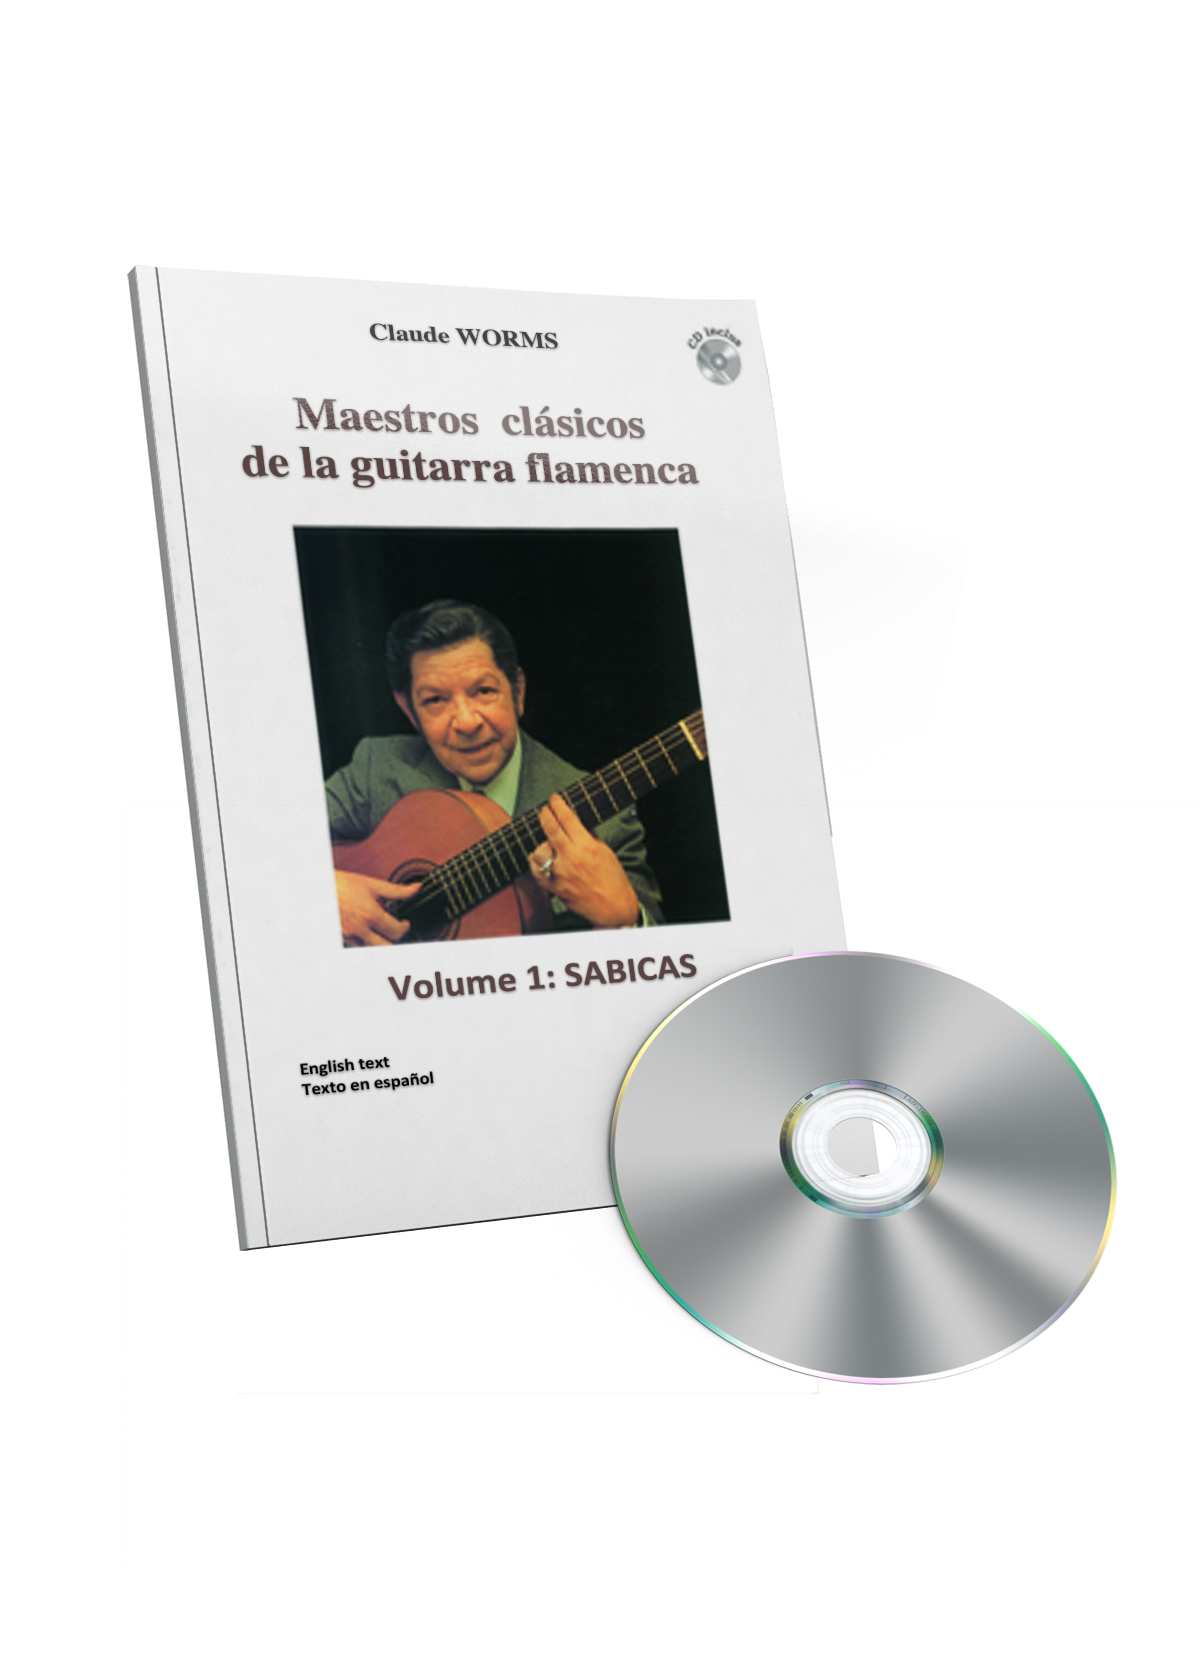 Sabicas guitar score book CD - Classical masters of flamenco guitar